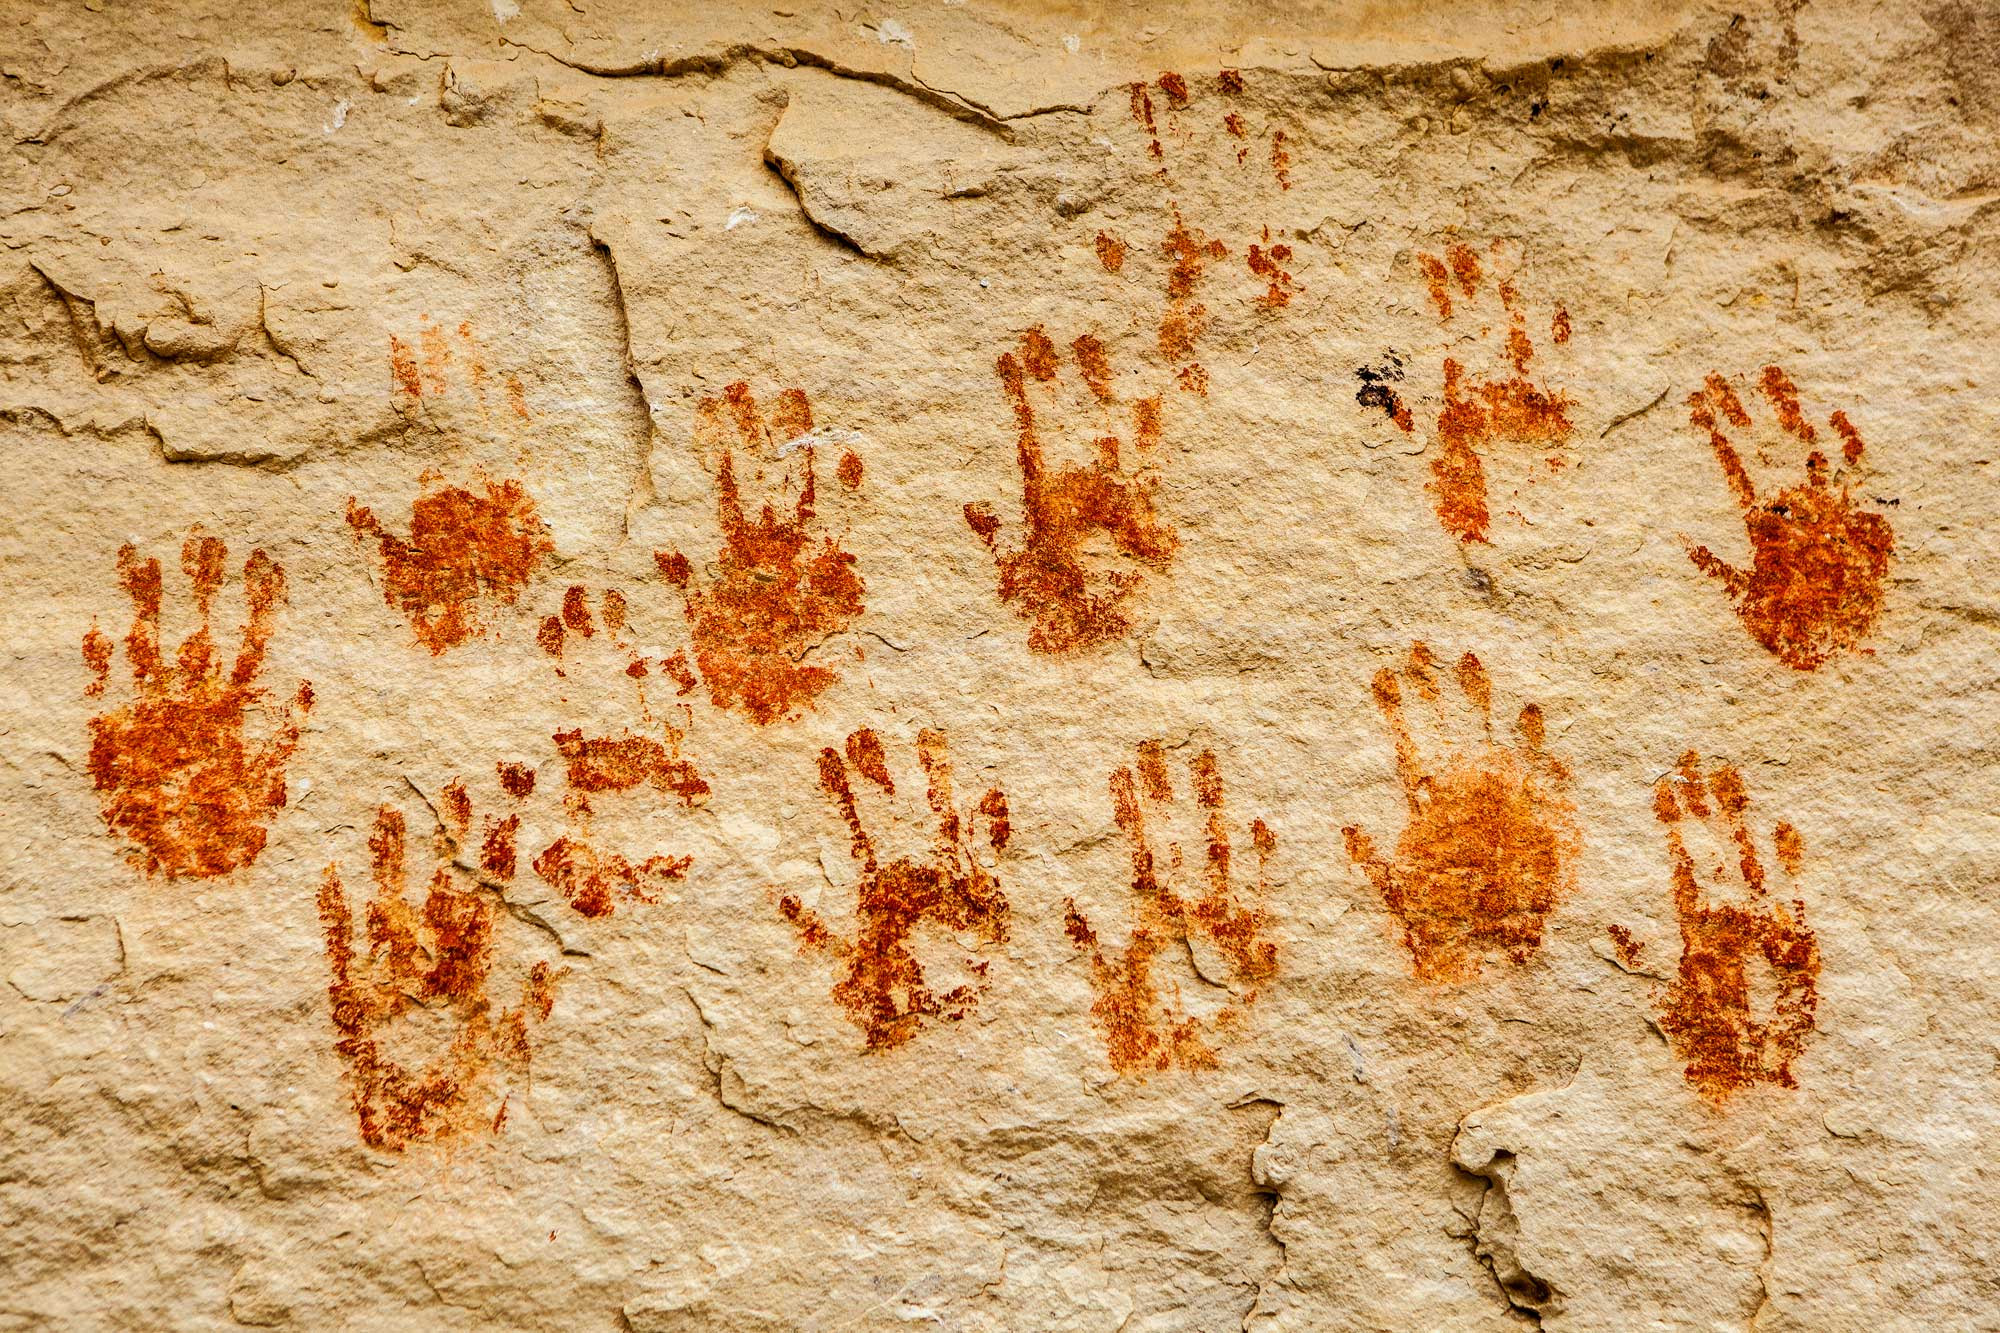 Contact - Ancient Hand Print Rock Art Site on the Devil's River